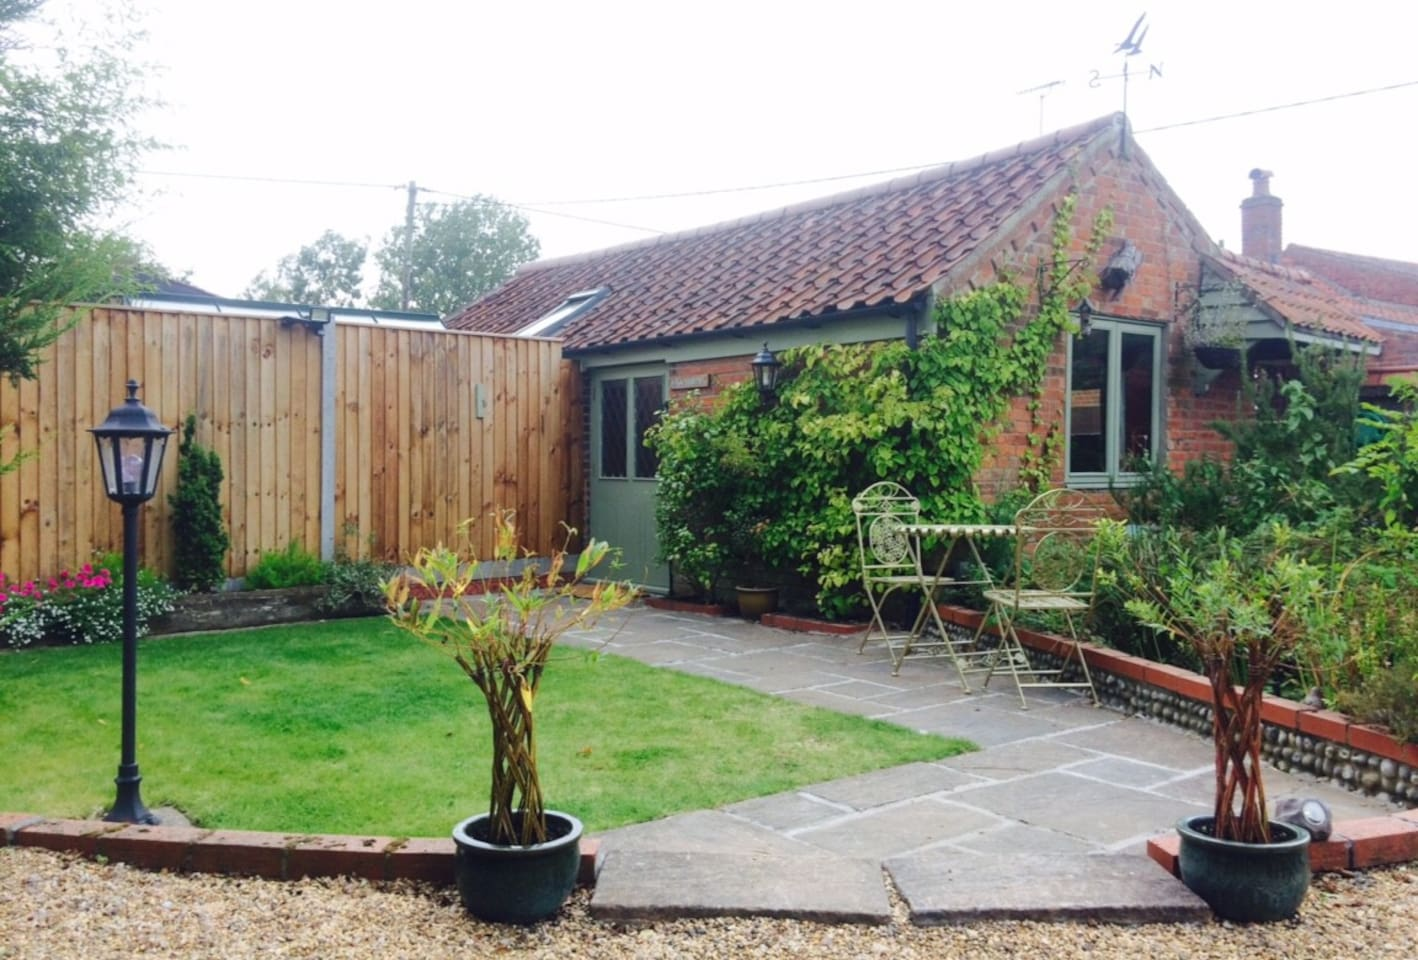 The annexe has its own courtyard and garden.